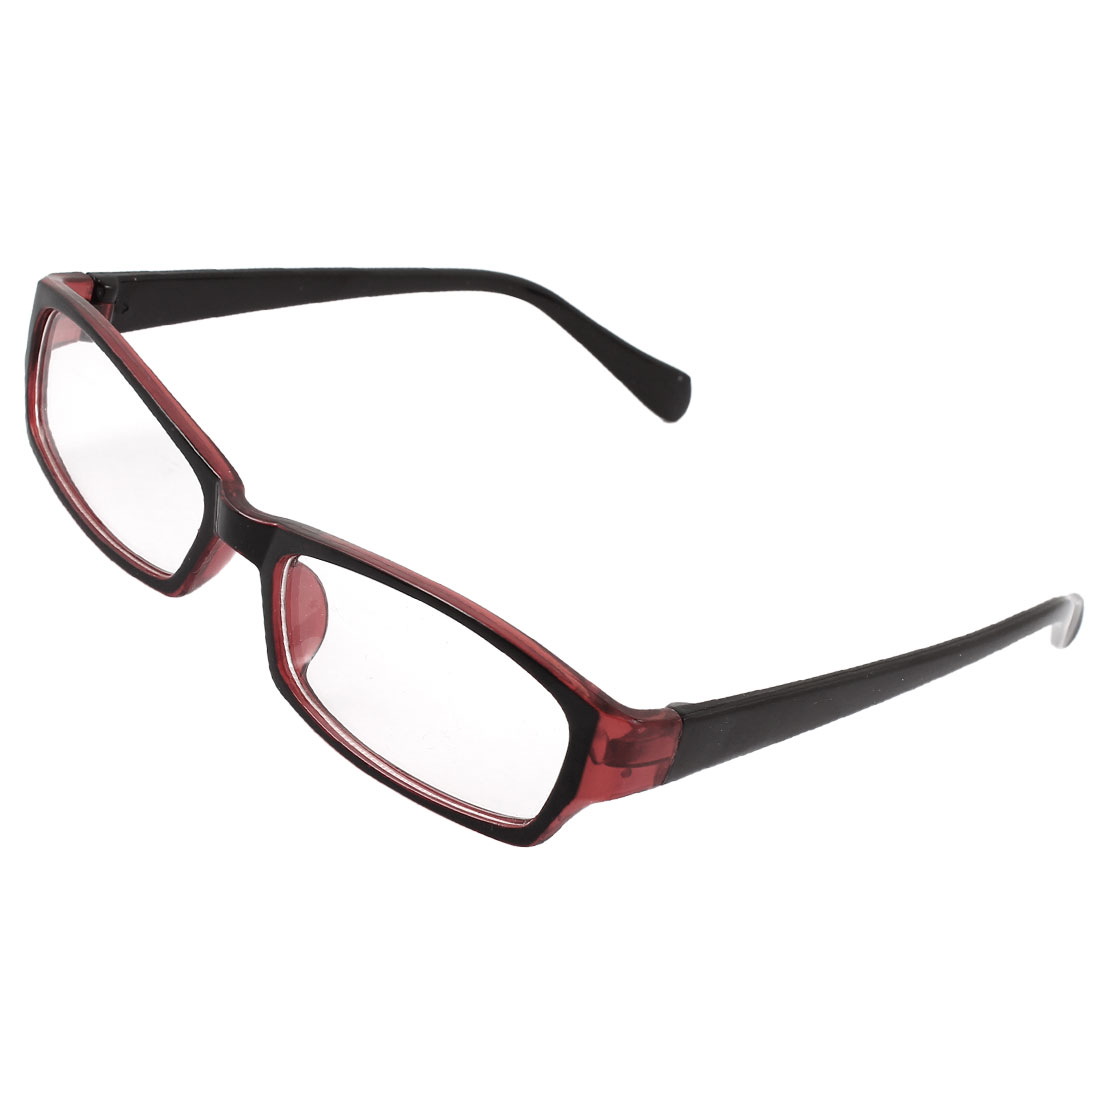 Black Burgundy Rimmed Plastic Arms Clear Lens Spectacles for Women